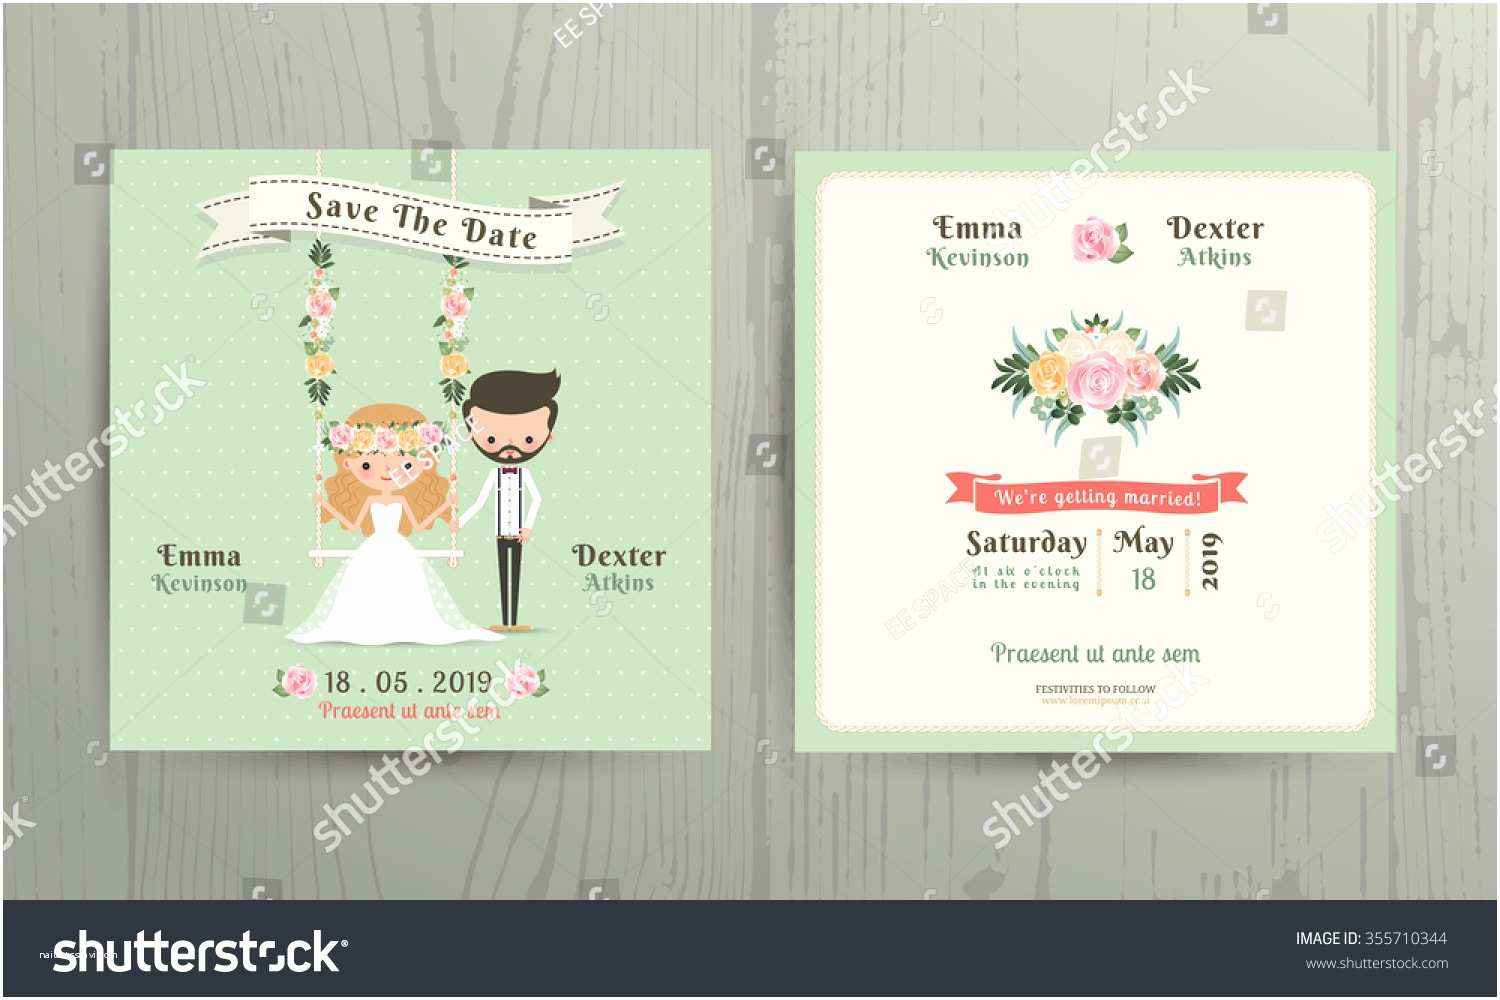 Wedding Invitations with Pictures Of Couple Rustic Wedding Cartoon Bride Groom Couple Stock Vector